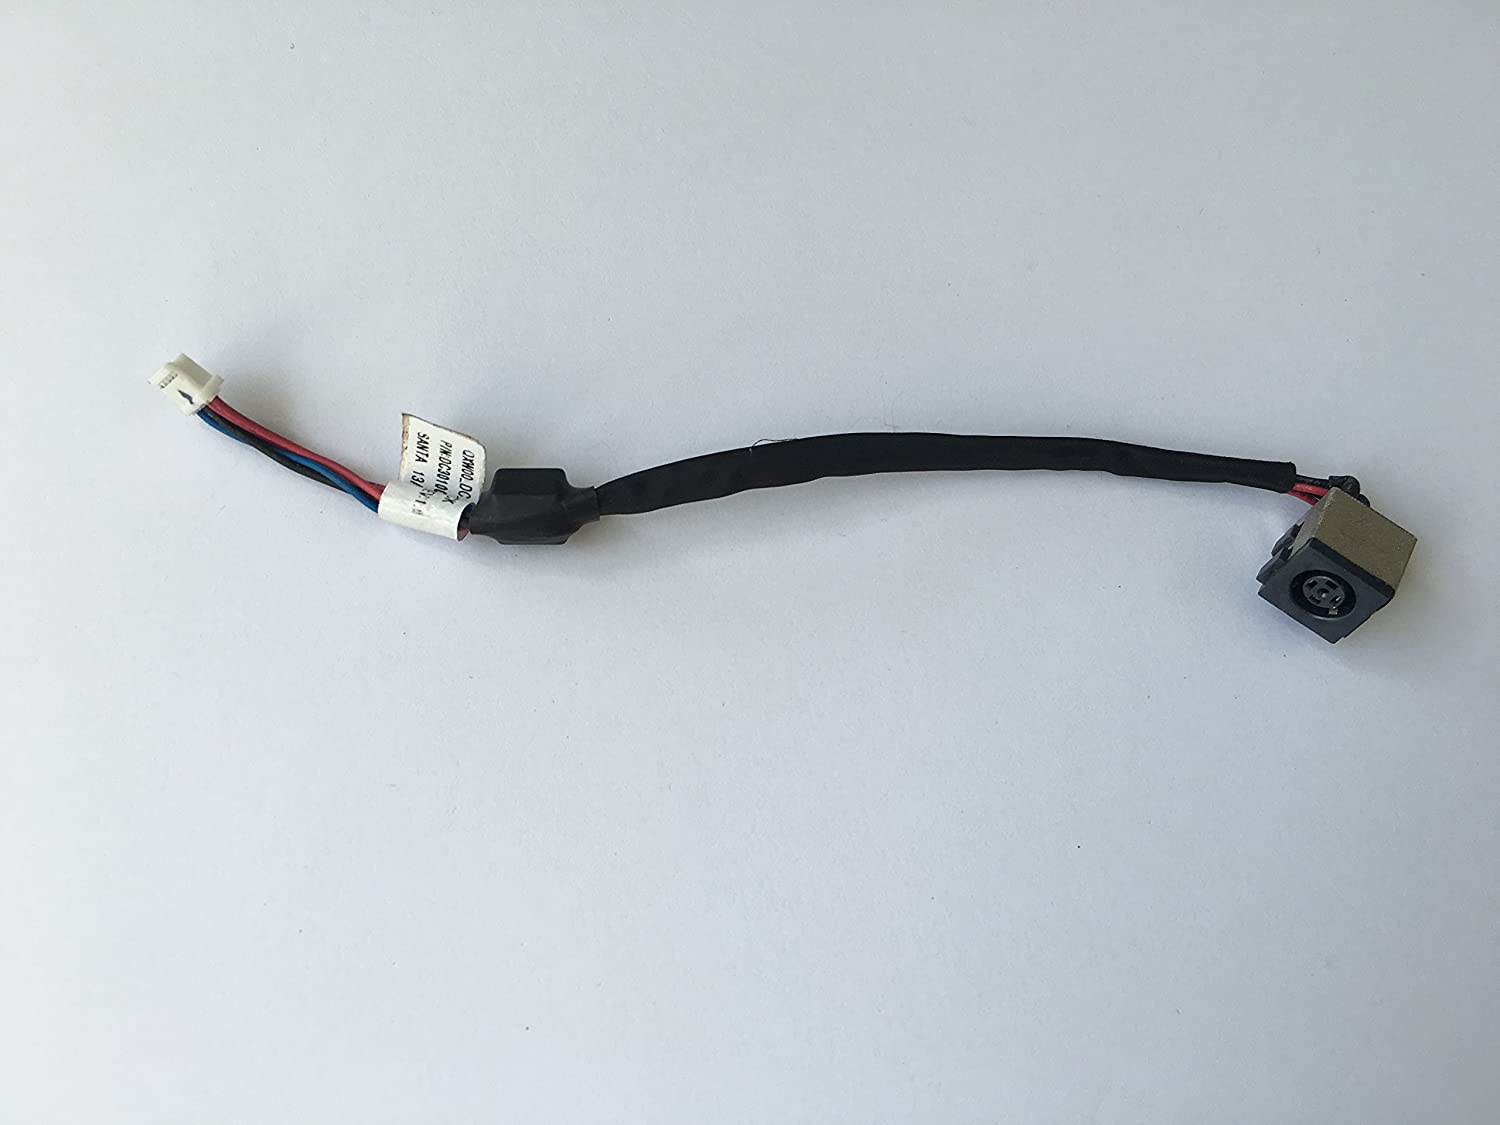 DC-IN Jack for Dell Latitude E5530 171XT, Power Jack Harness Port Connector Socket with Wire Cable